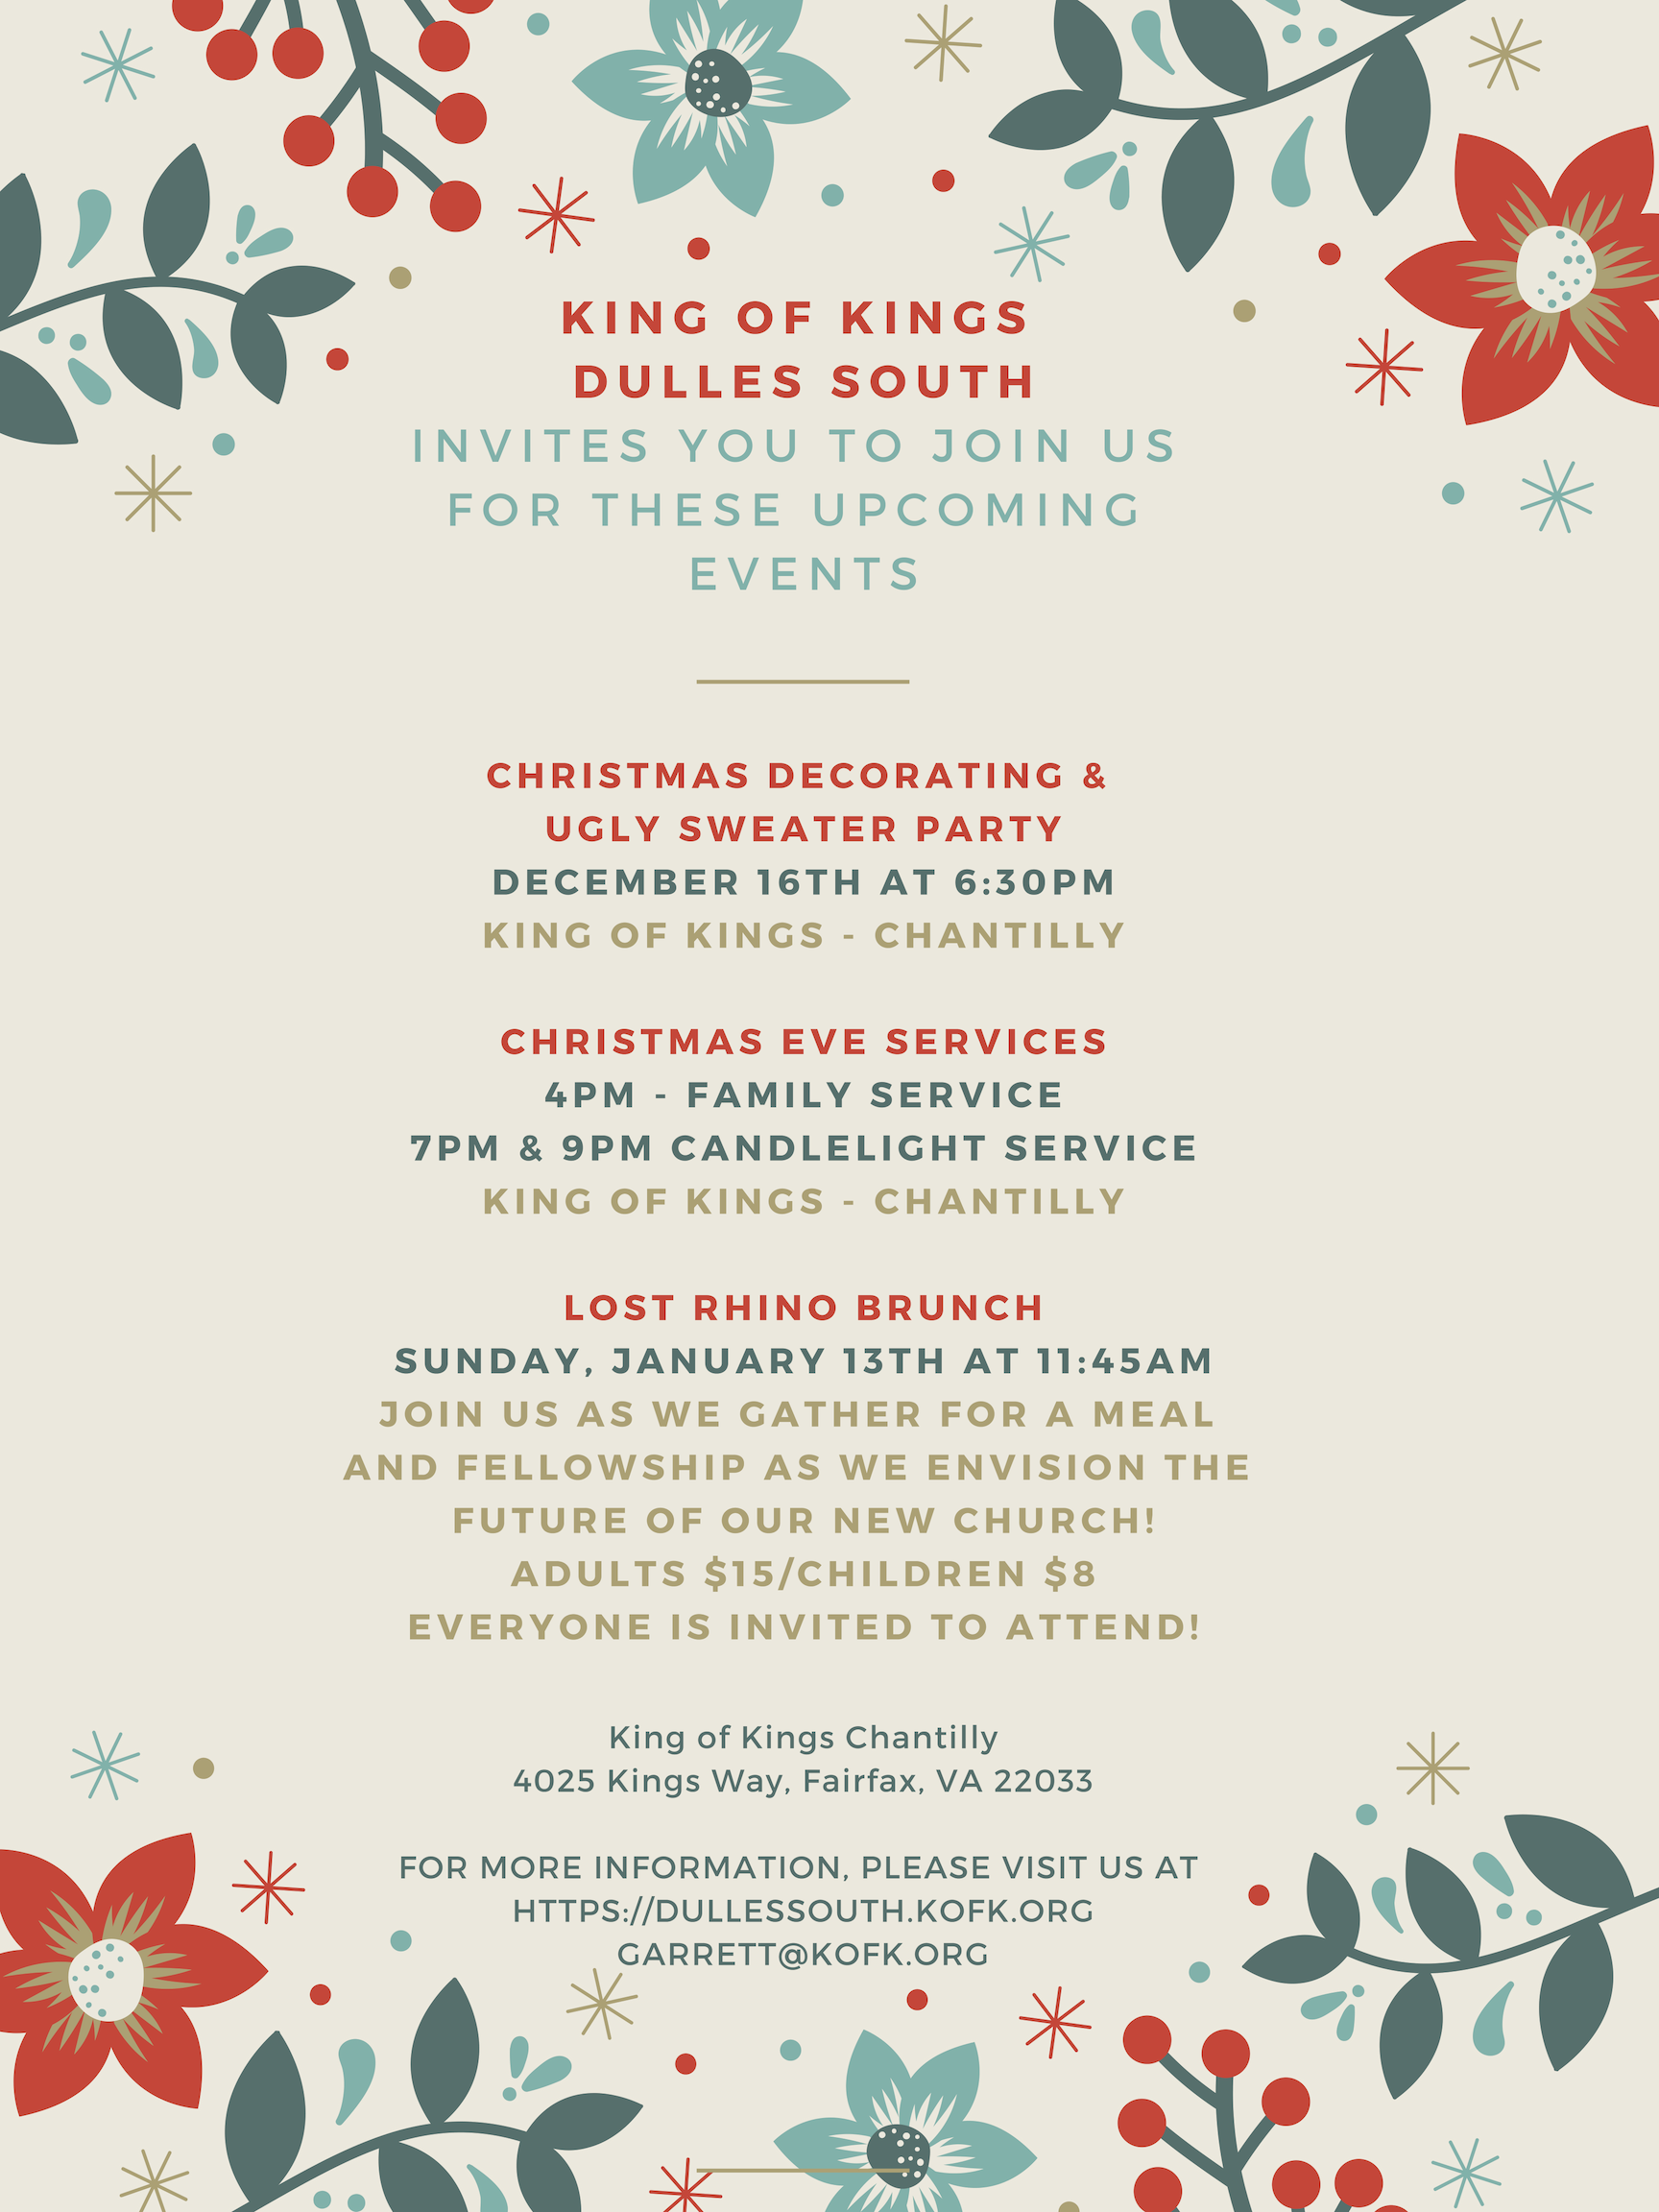 King of Kings Dulles South Upcoming Events.png